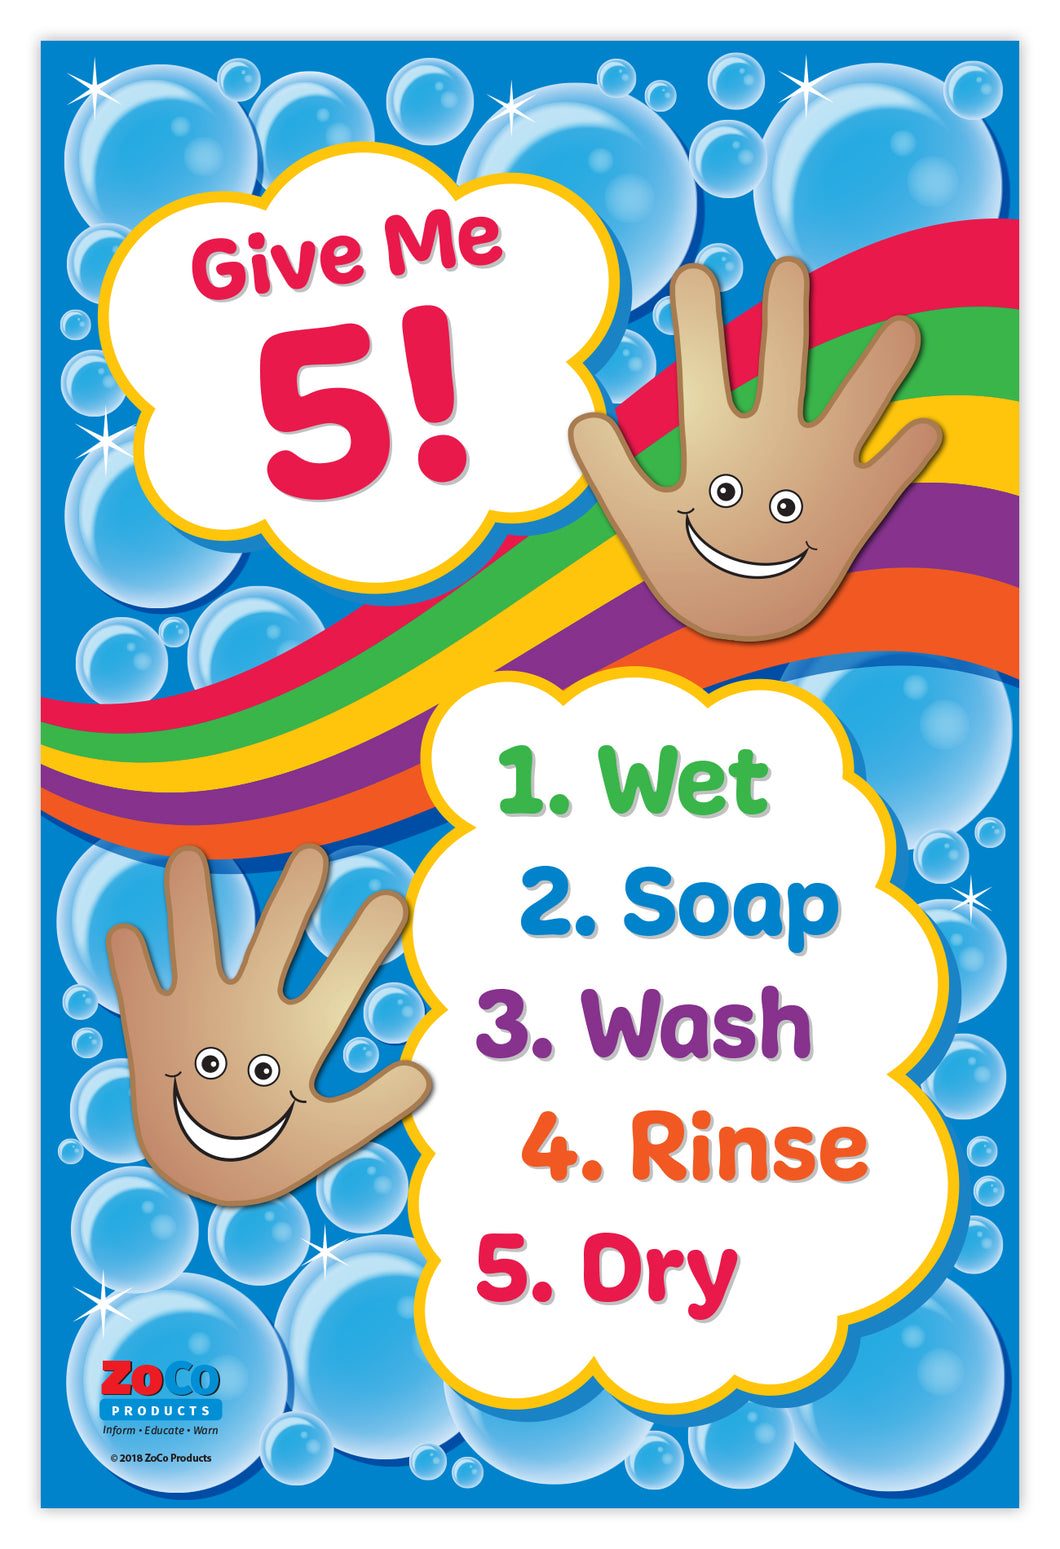 Give Me 5! Hand Washing for Kids Poster - 12